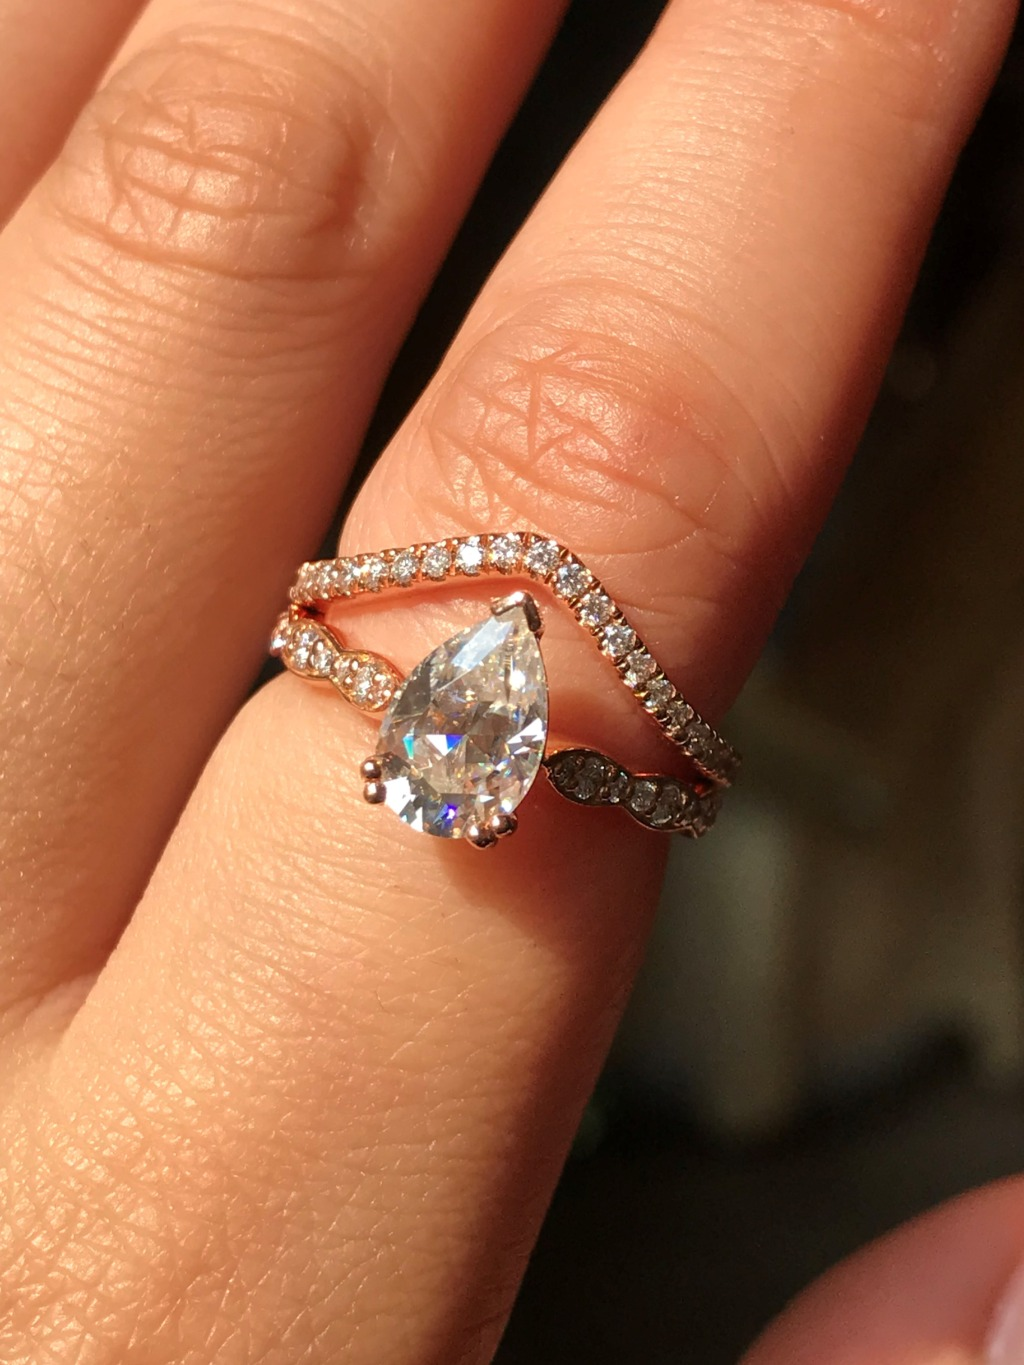 For all Pear Cut lovers out there, here is our Grace Solitaire Moissanite Ring in Diamond Scalloped Band paired with our curve diamond